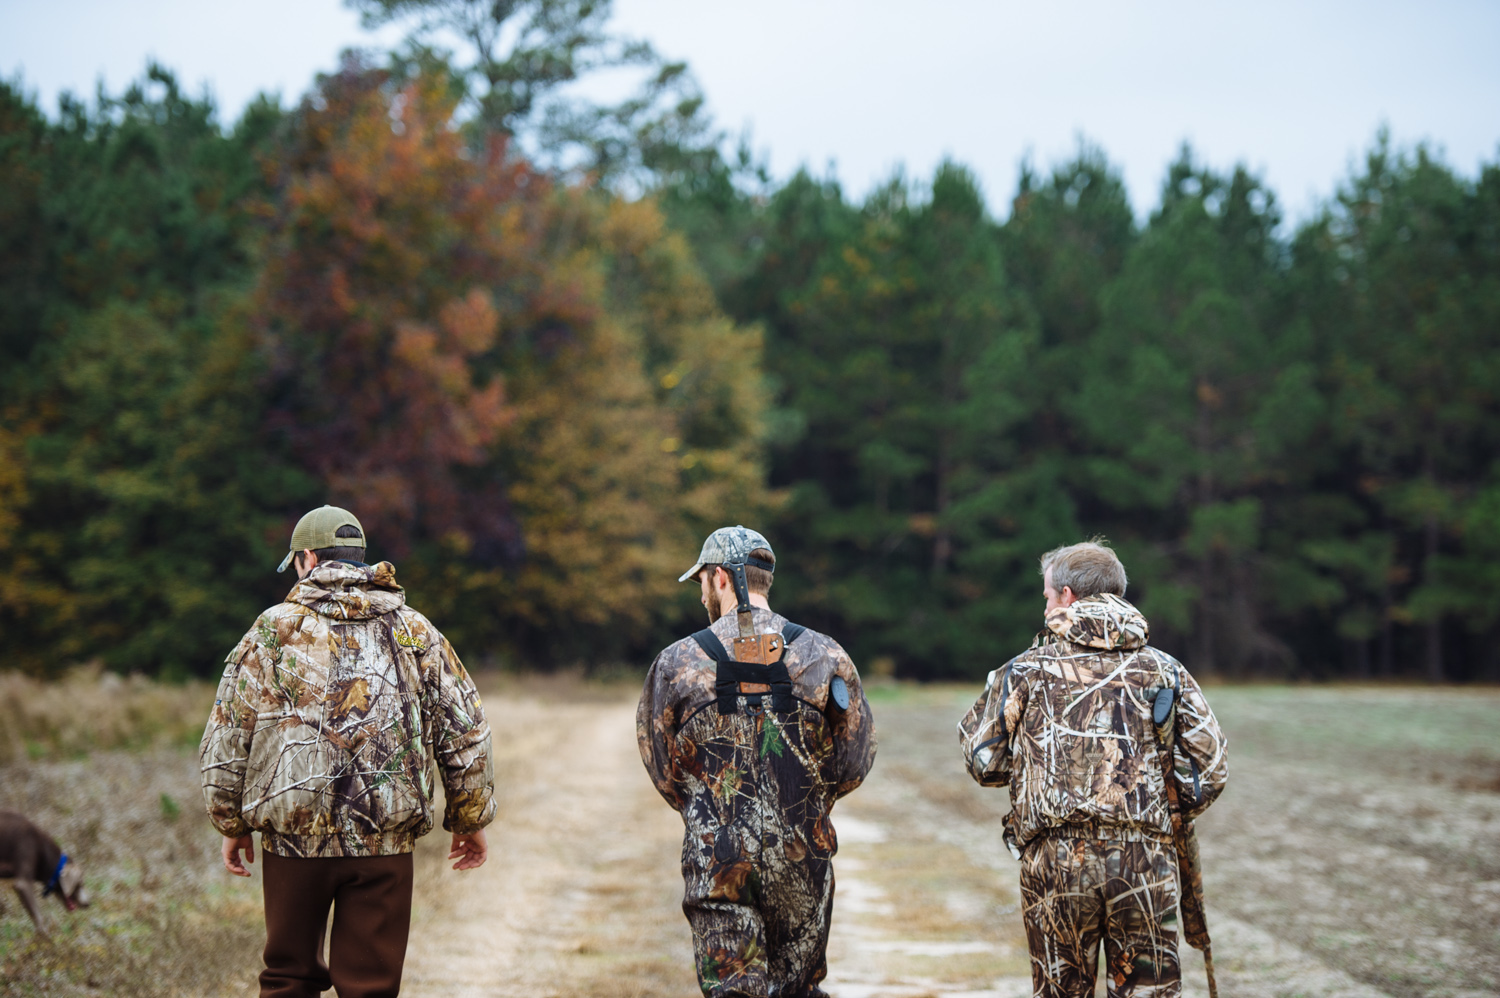 #skinnywaders2013 I THE2654PROJECT-4.jpg